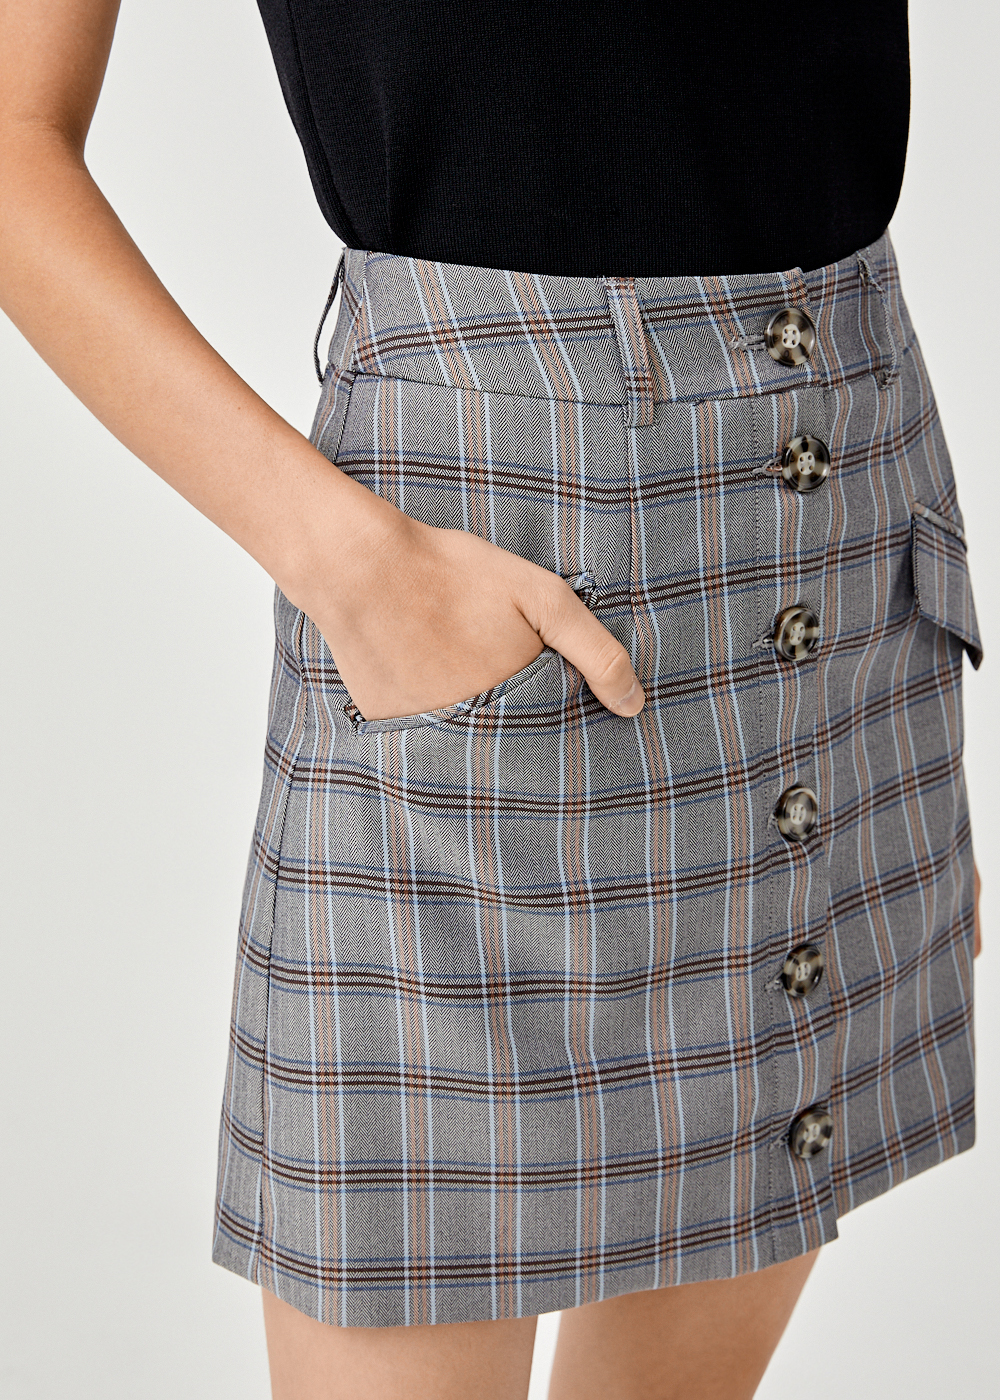 Nathalia Plaid A-line Mini Skirt